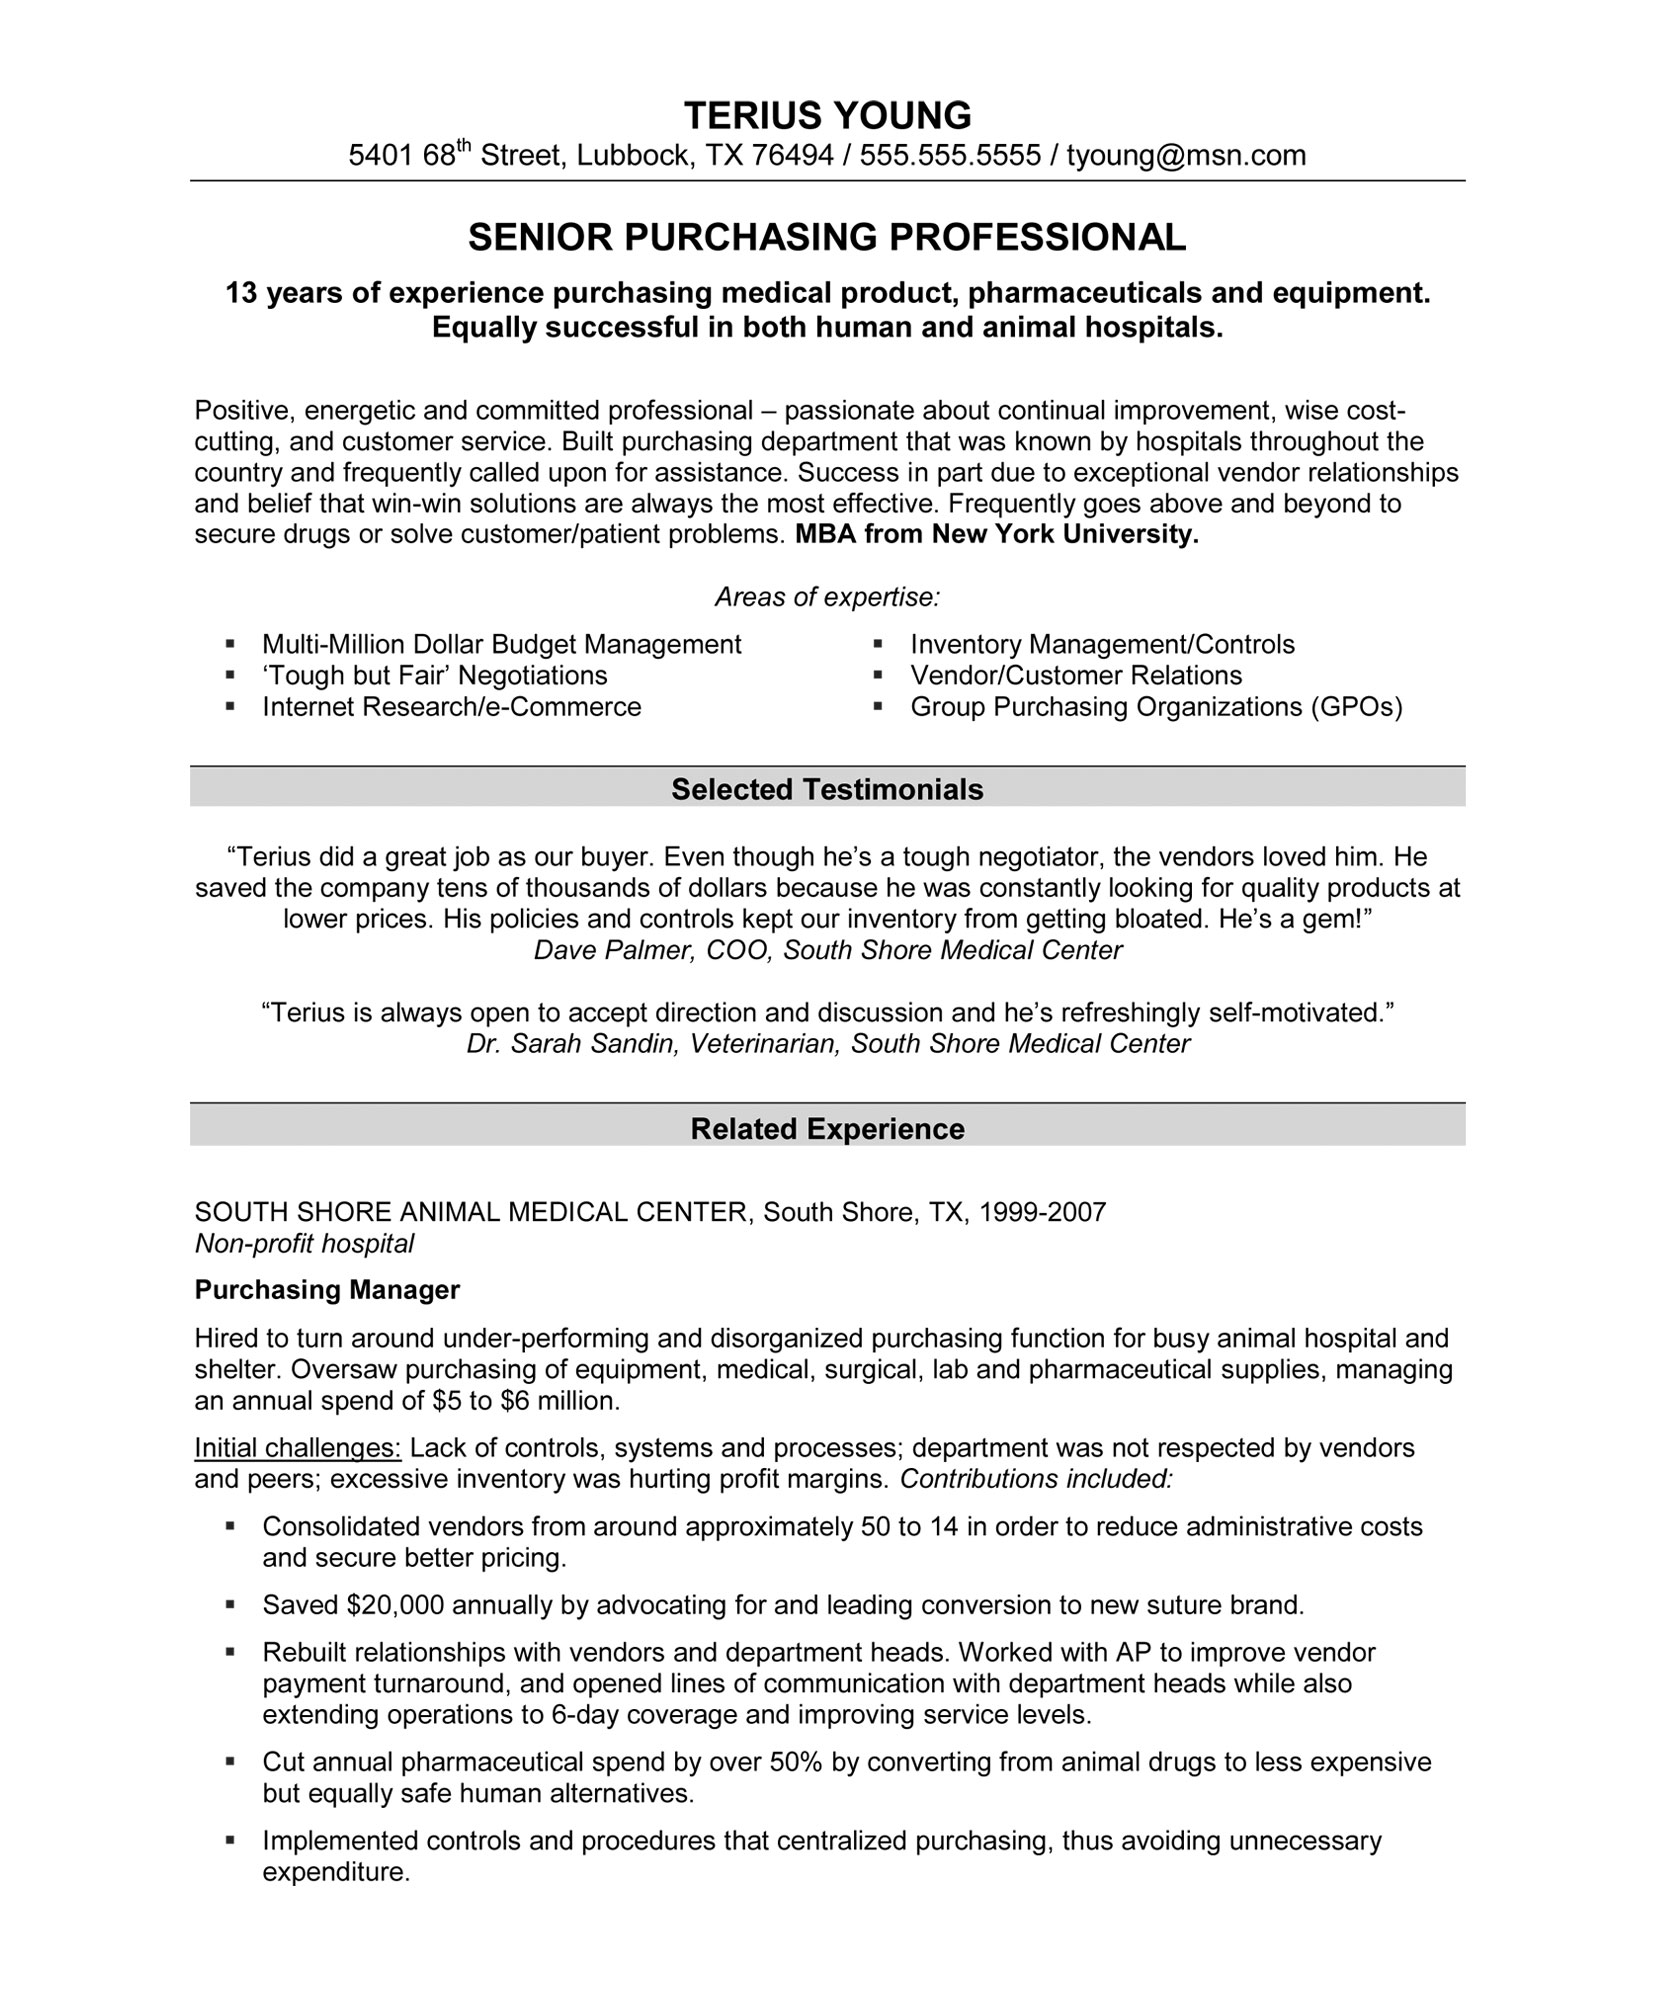 The Revised Resume  How To Make A Better Resume